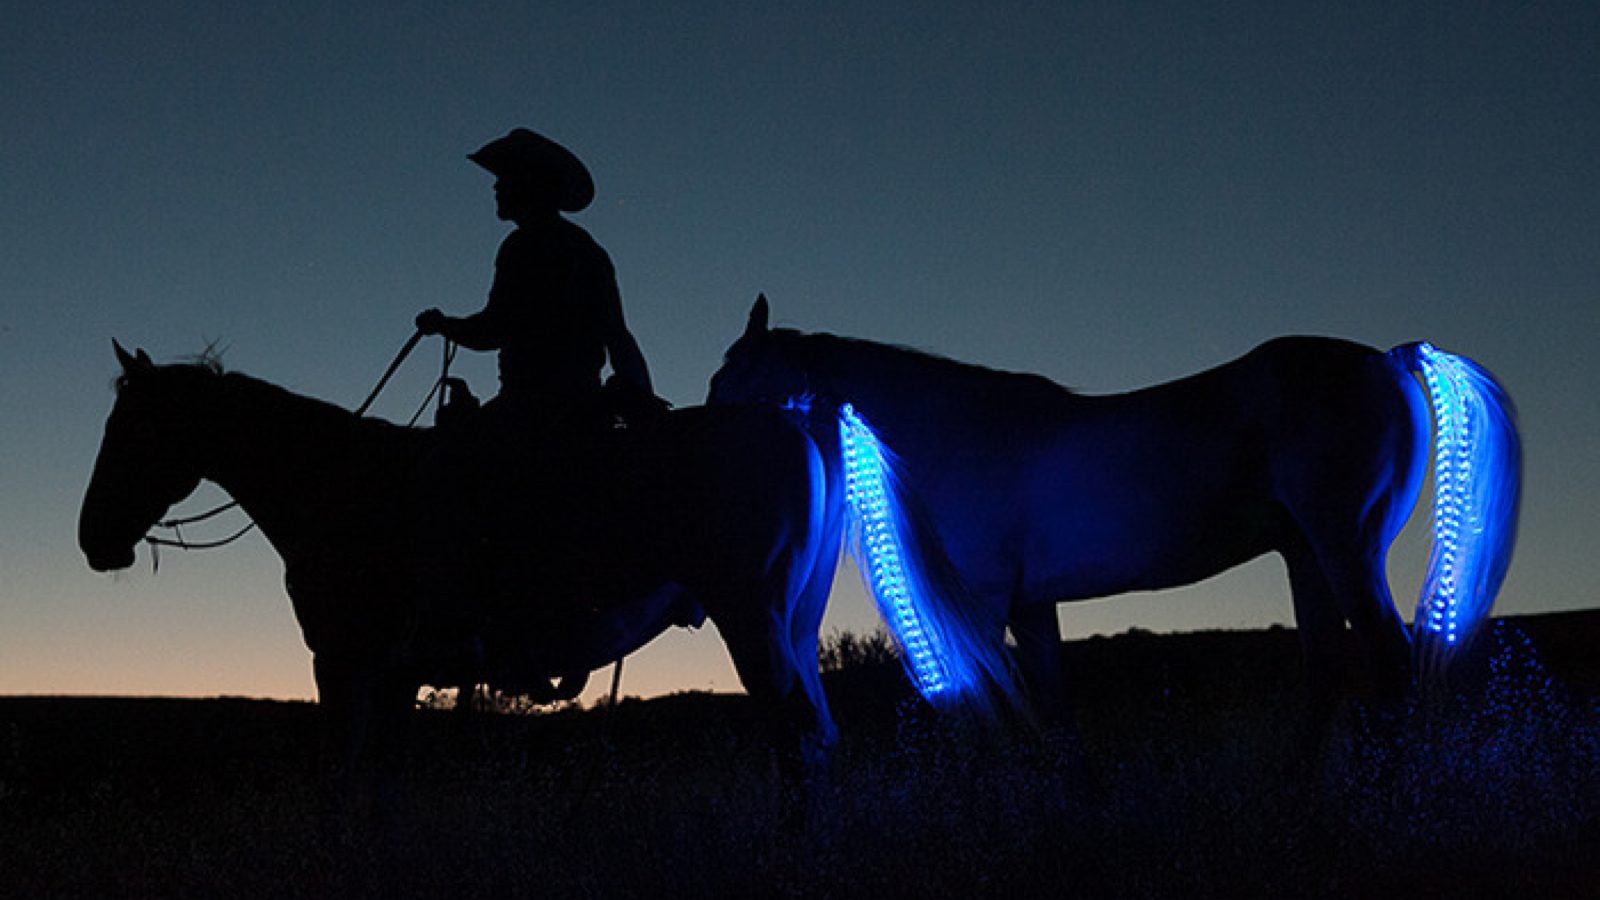 Turn A Horse Into A Tron Motorcycle With Neons… For Safety!